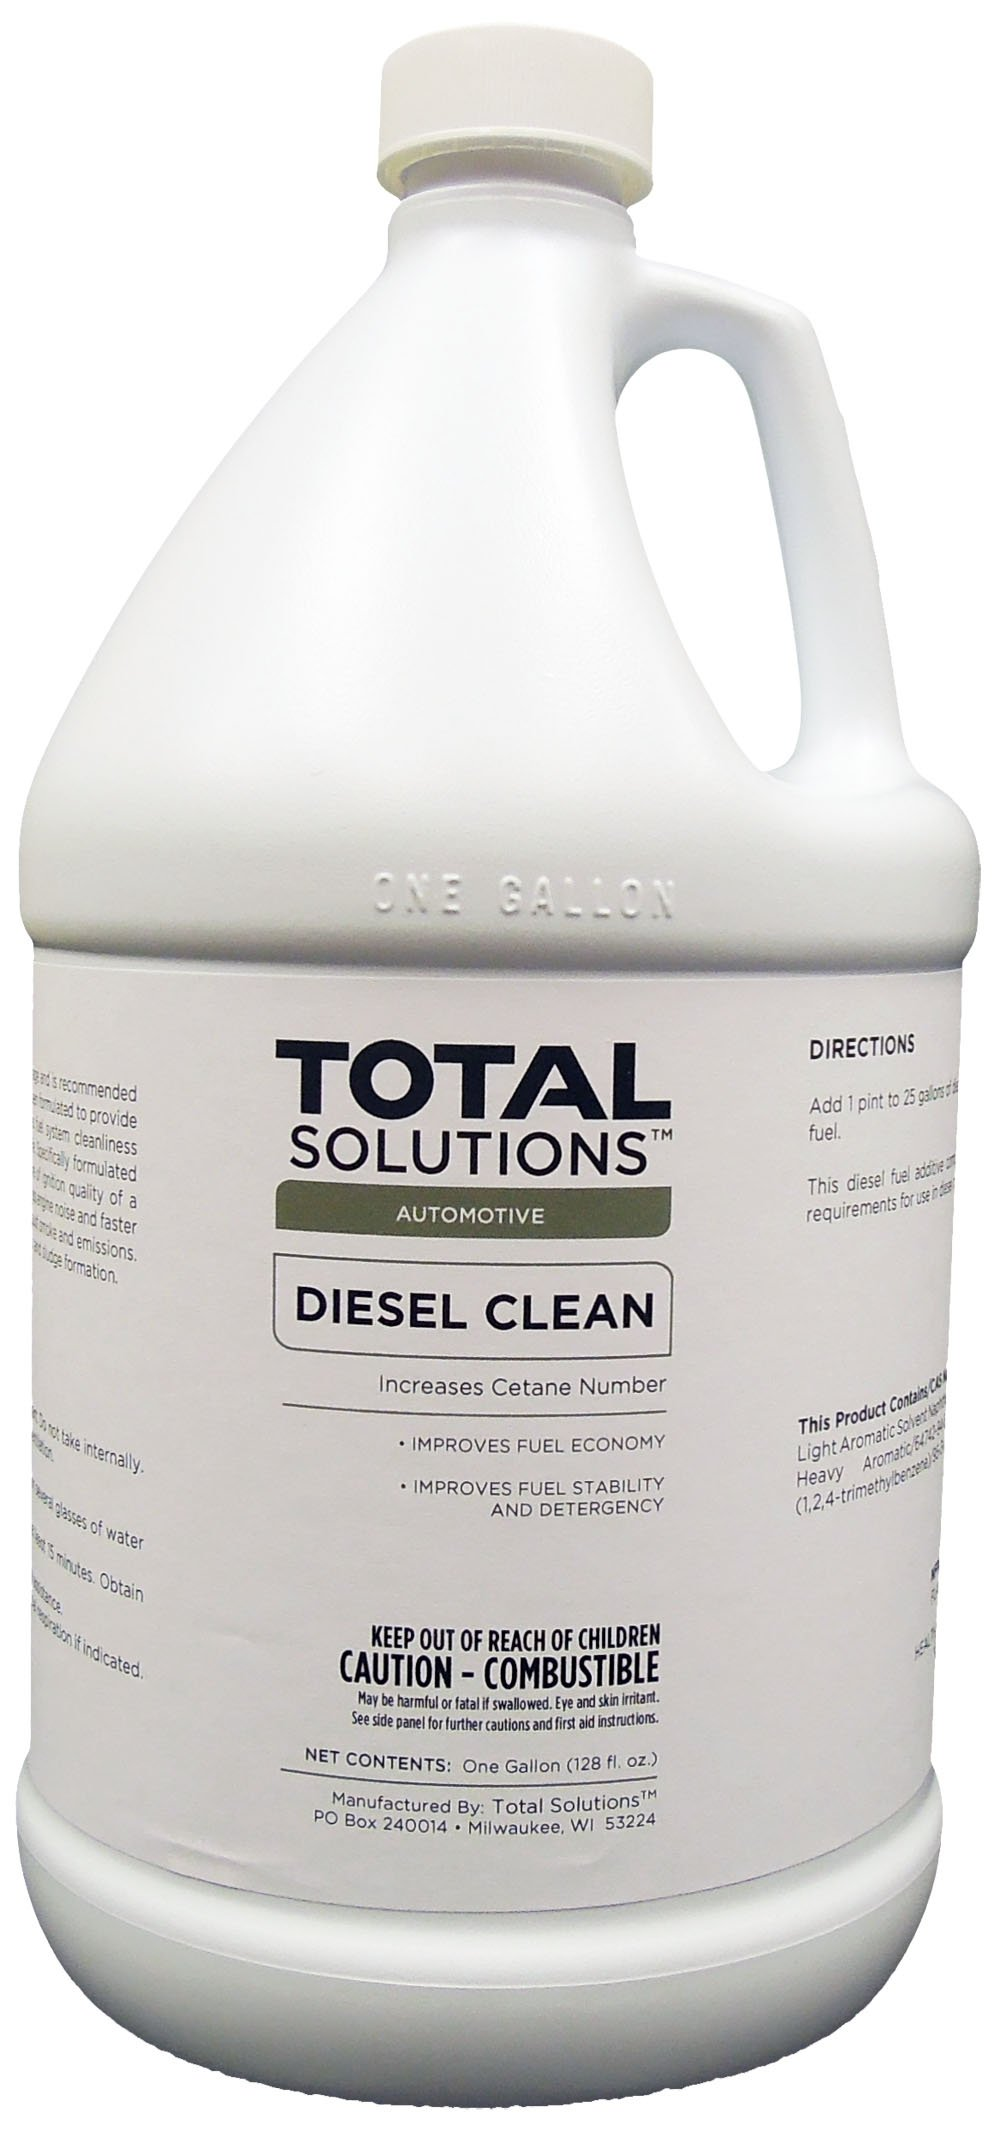 Diesel Clean, Cetane-improving diesel additive- 4 Gallons